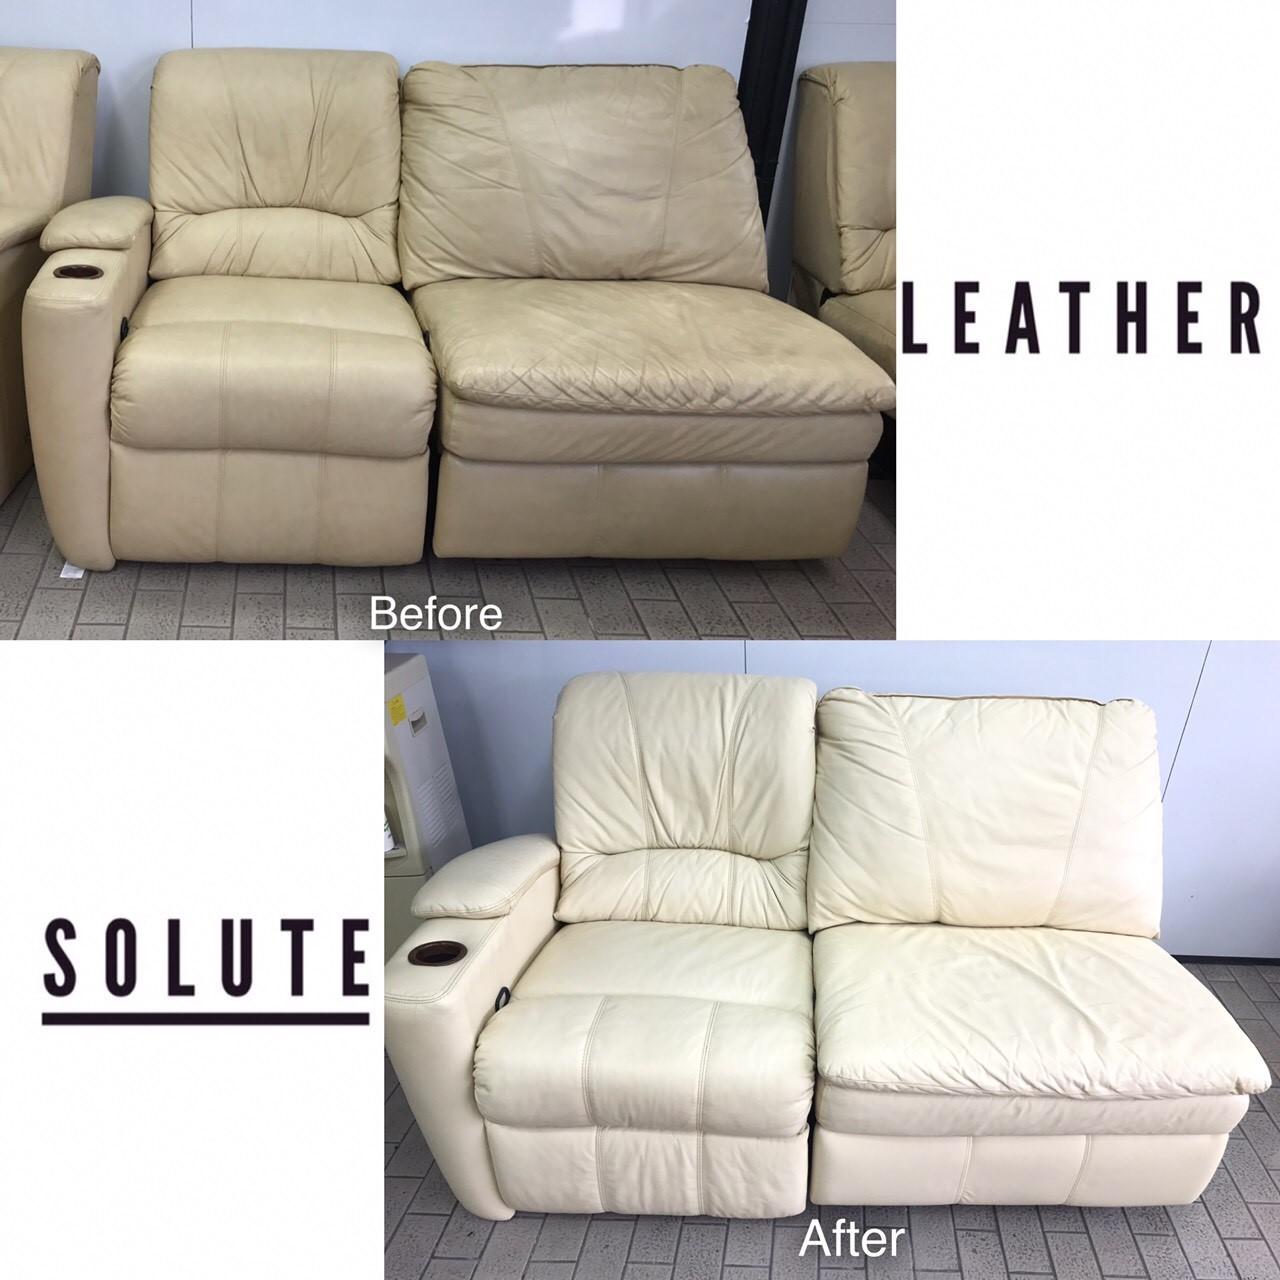 //www.leathersolute.co.th/wp-content/uploads/2018/12/Cleaning-furniture_๑๘๑๒๓๐_0006.jpg